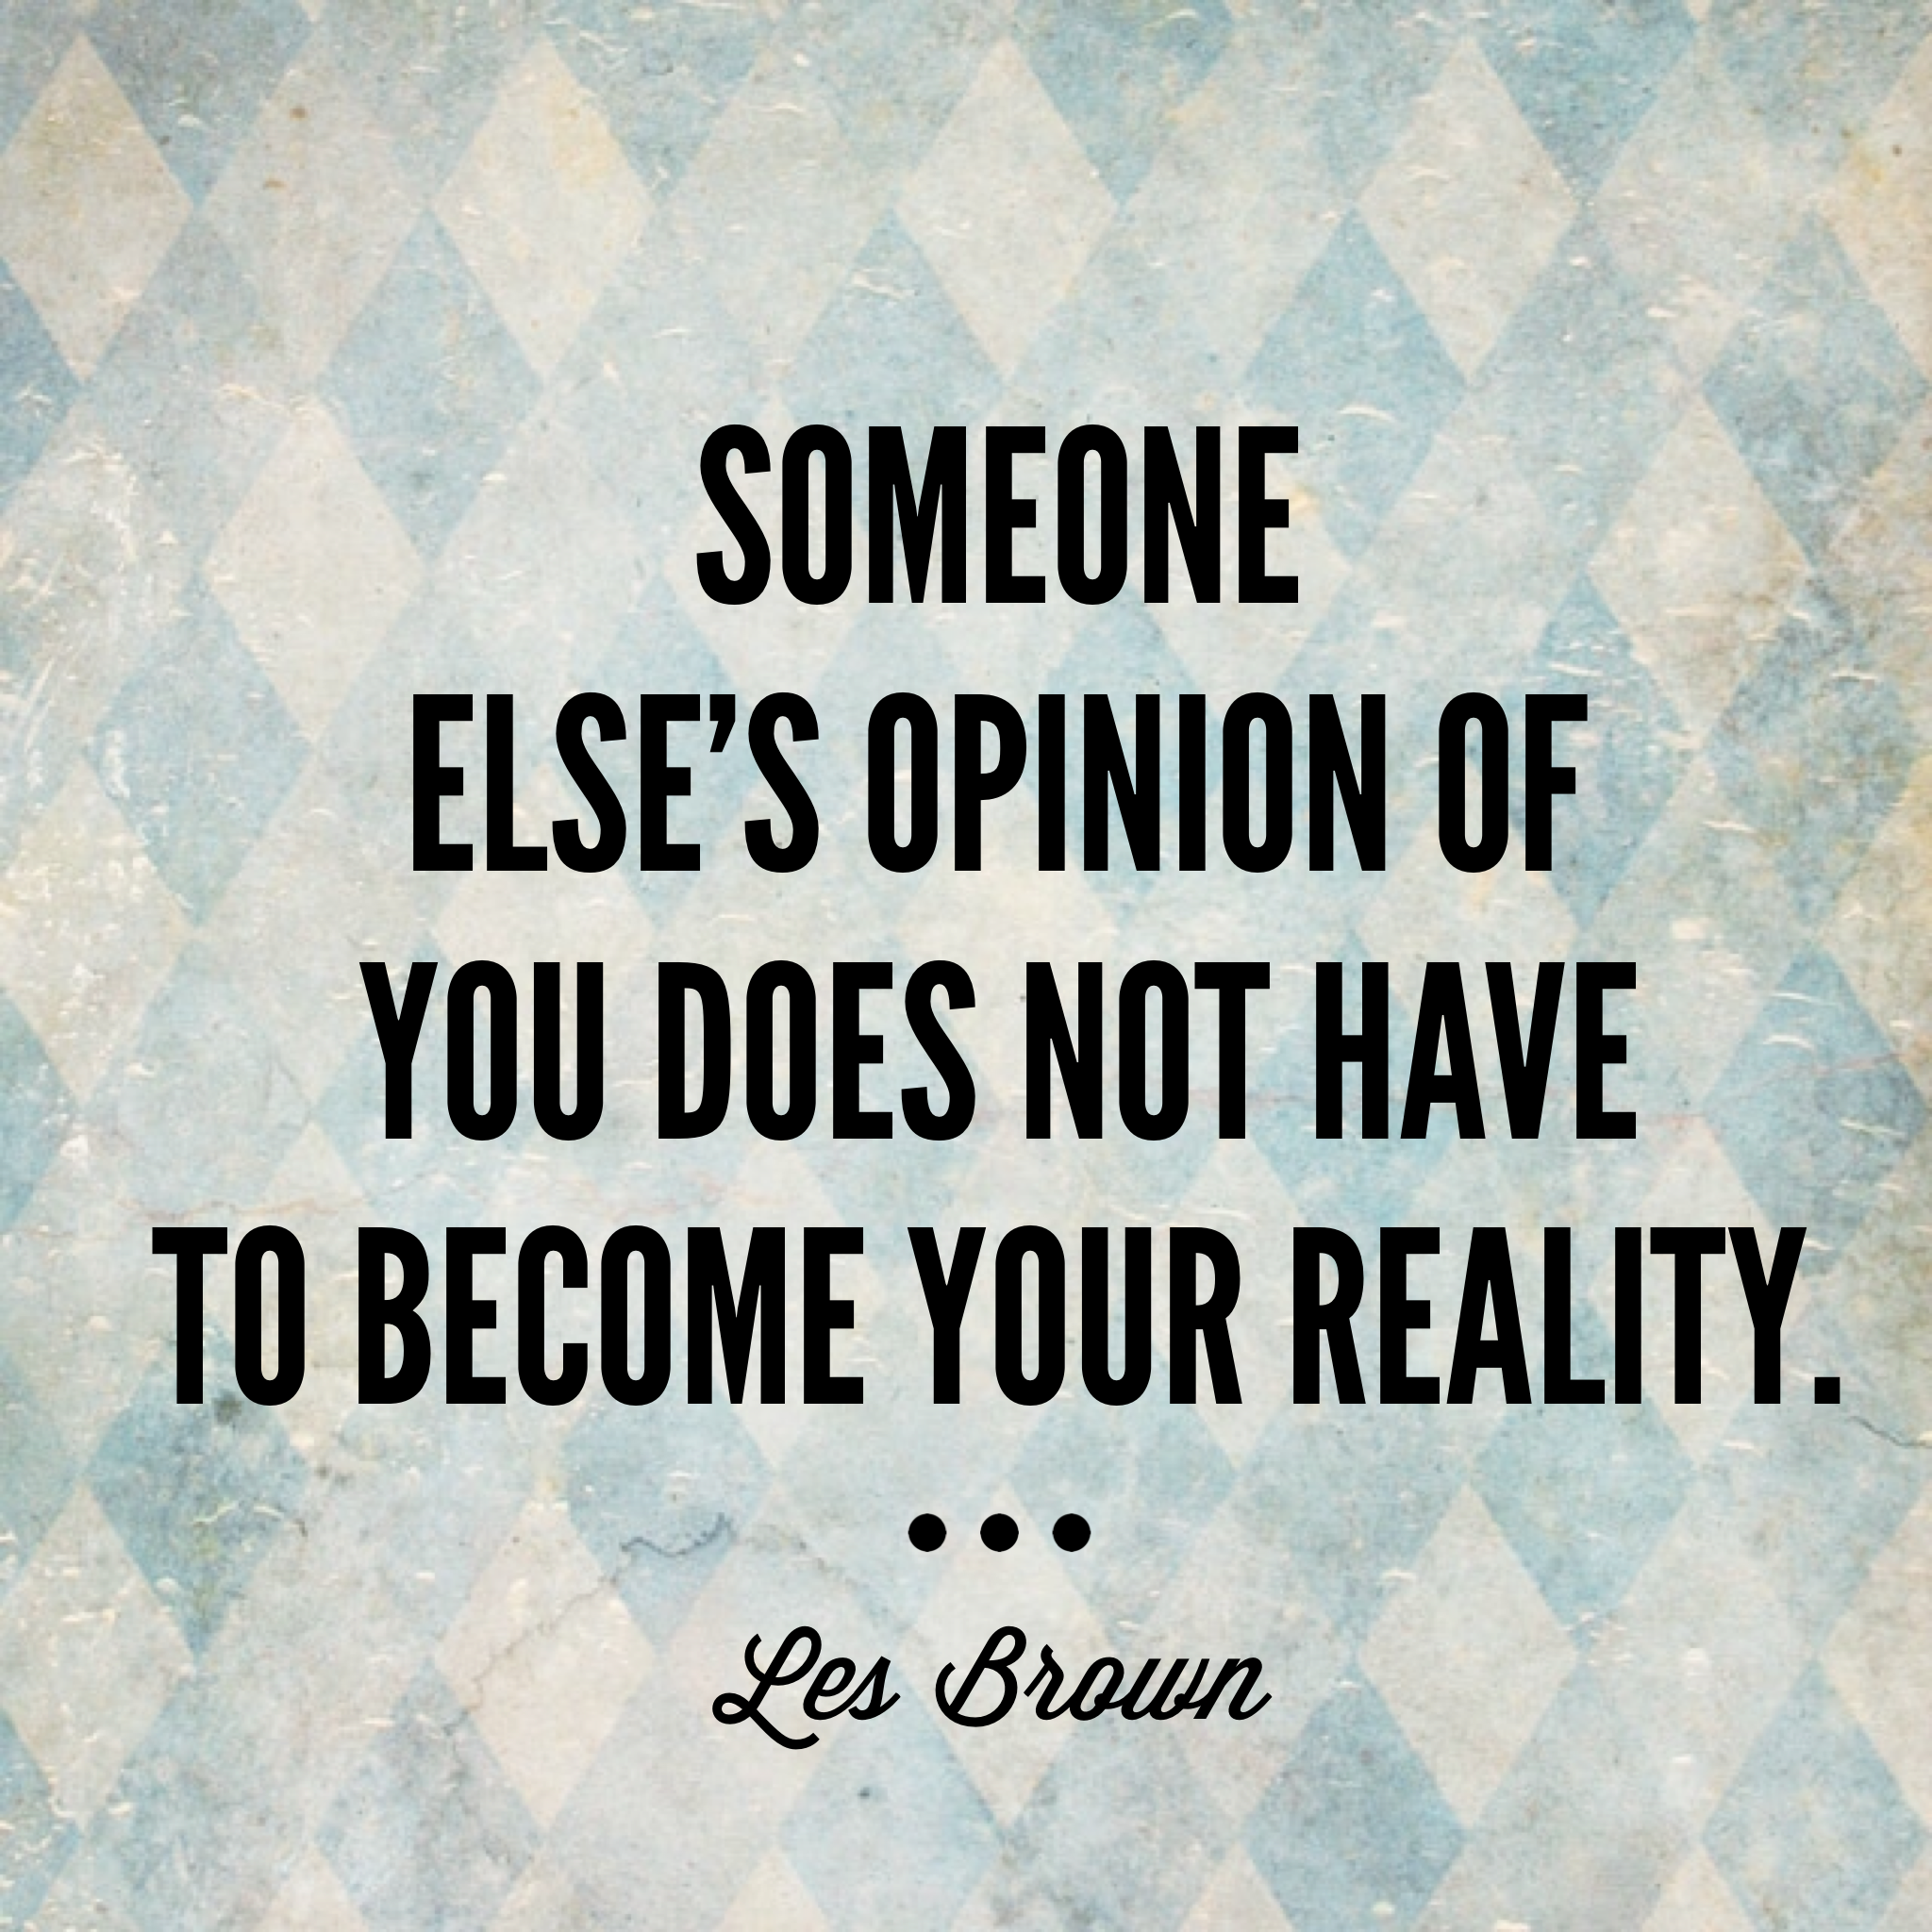 """Someone else's opinion of you does not have to become your reality."" -Les Brown"